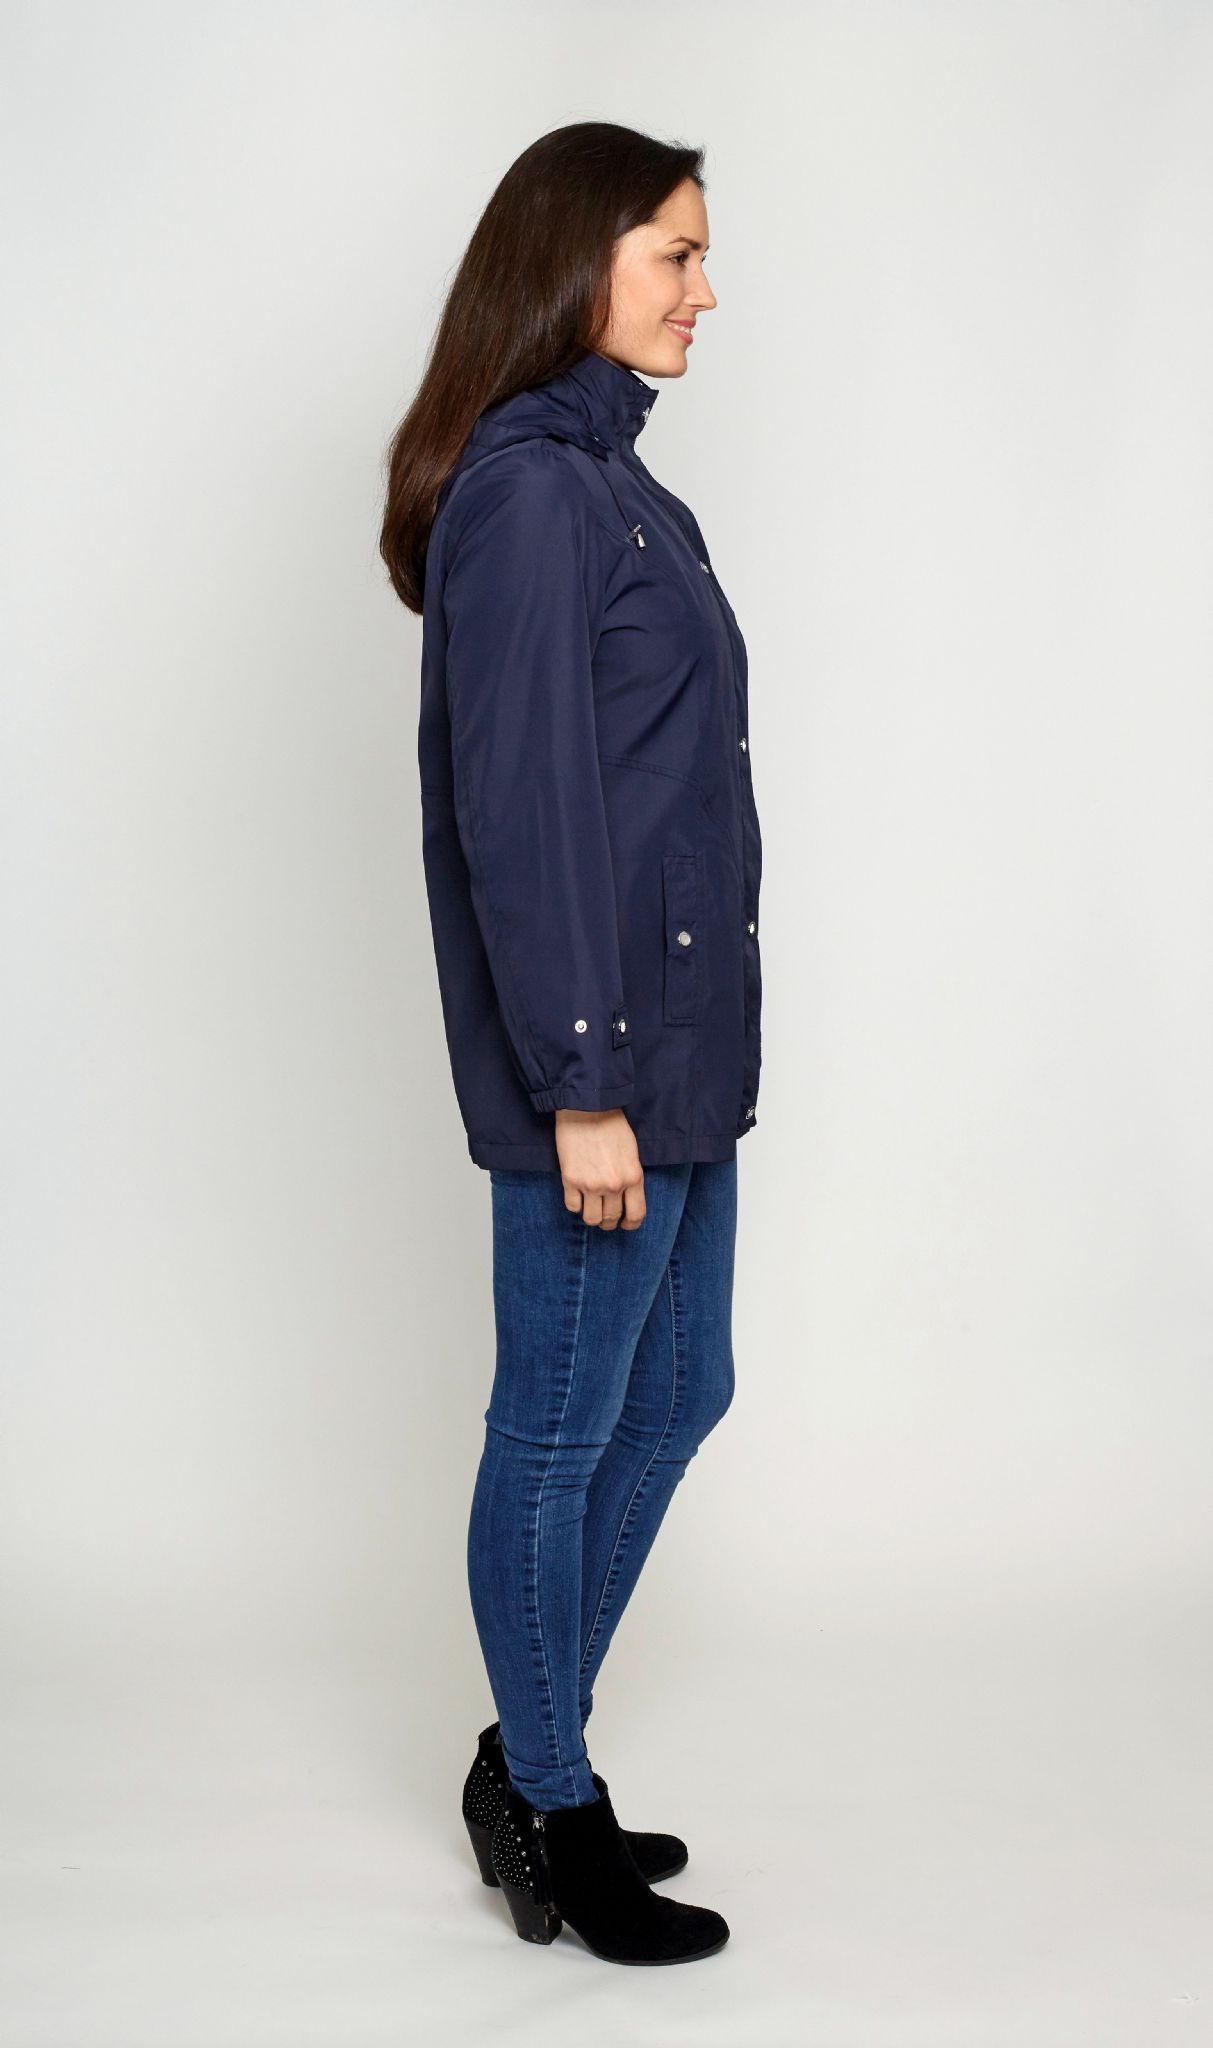 Women lightweight jacket